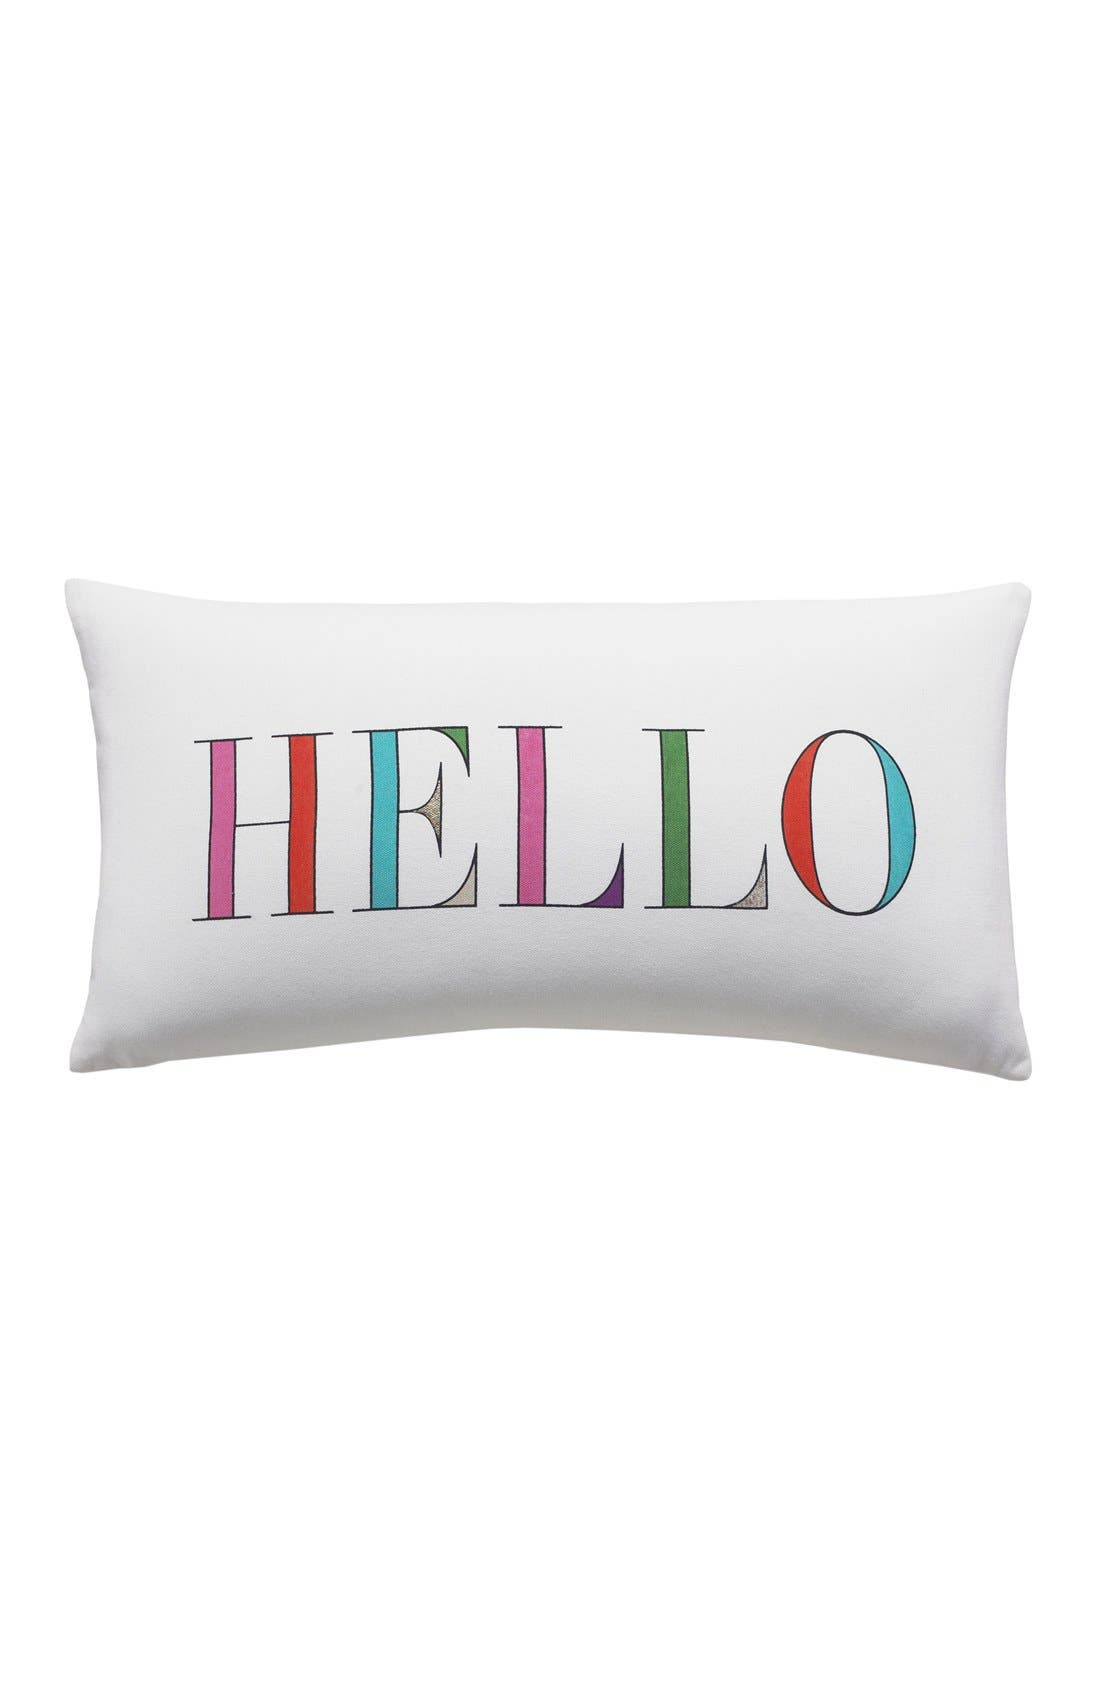 Main Image - kate spade new york 'hello' accent pillow